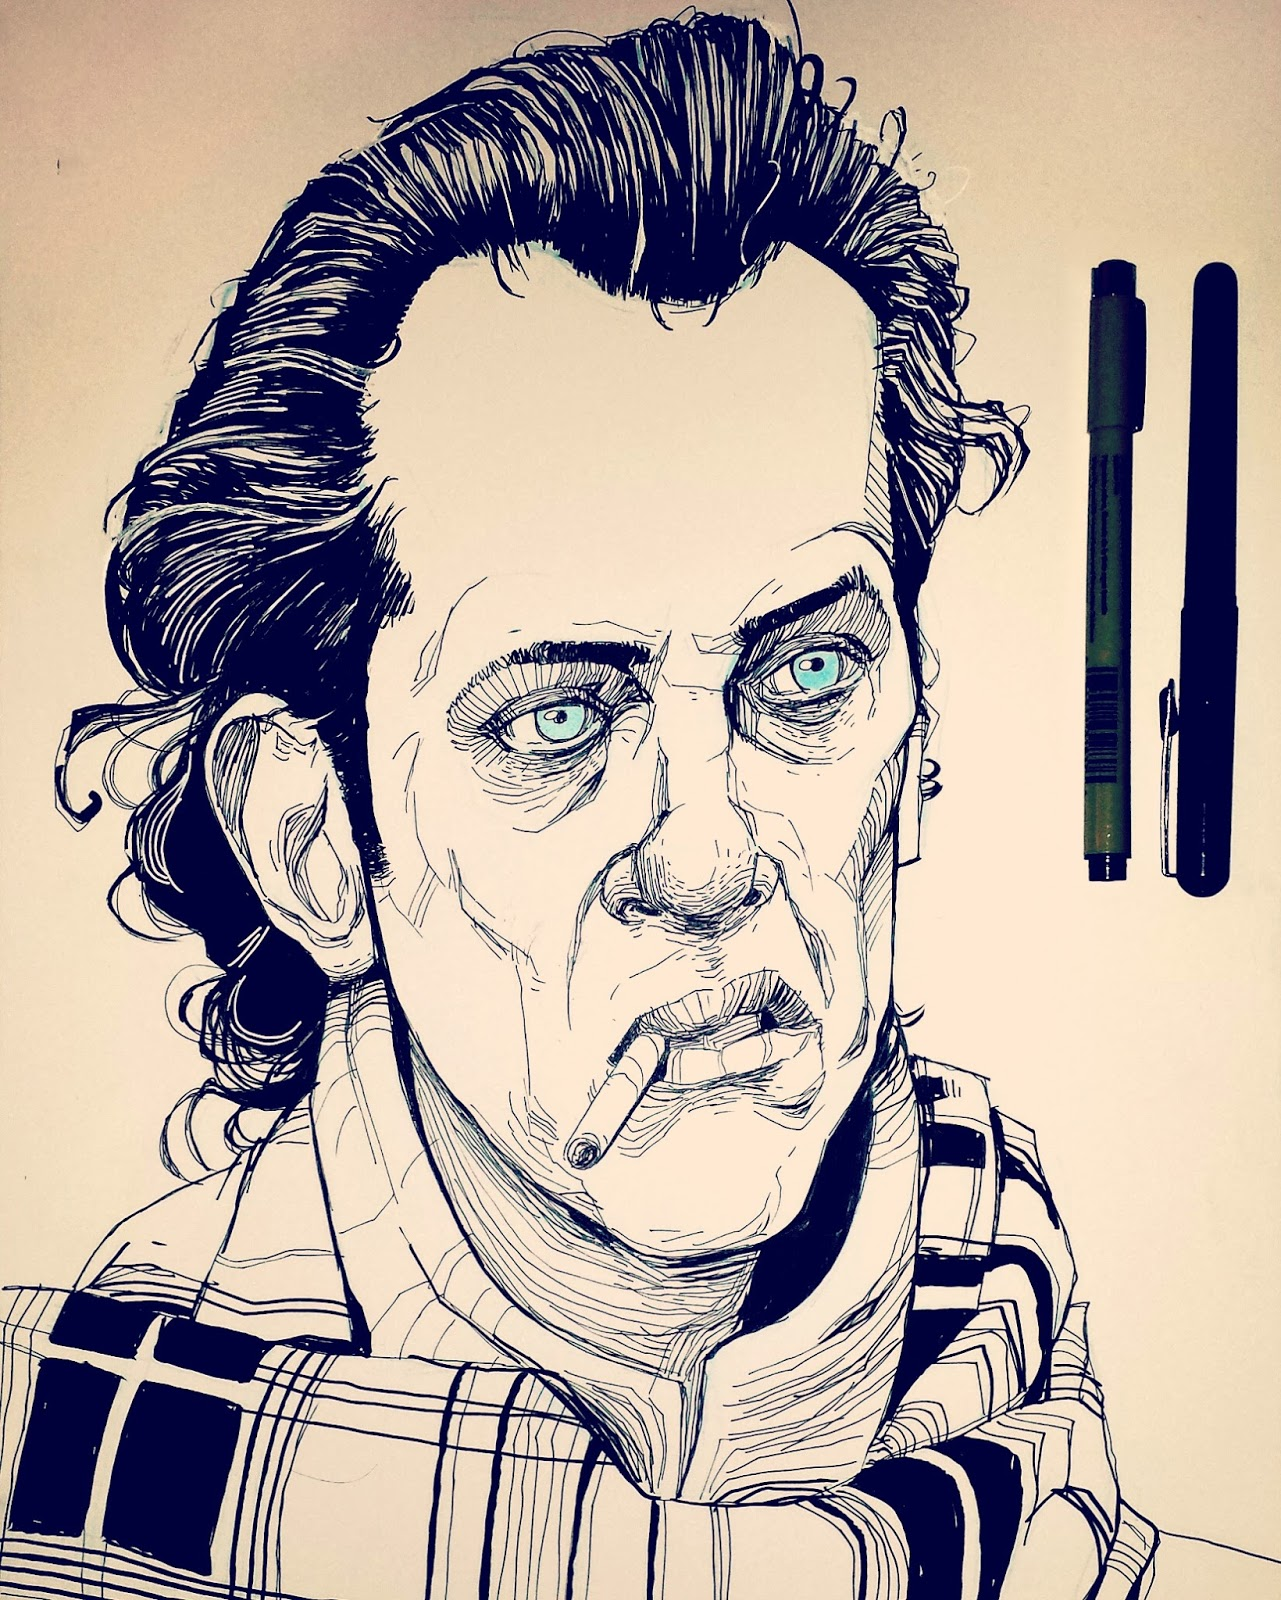 Withnail and I Richard E Grant drawing